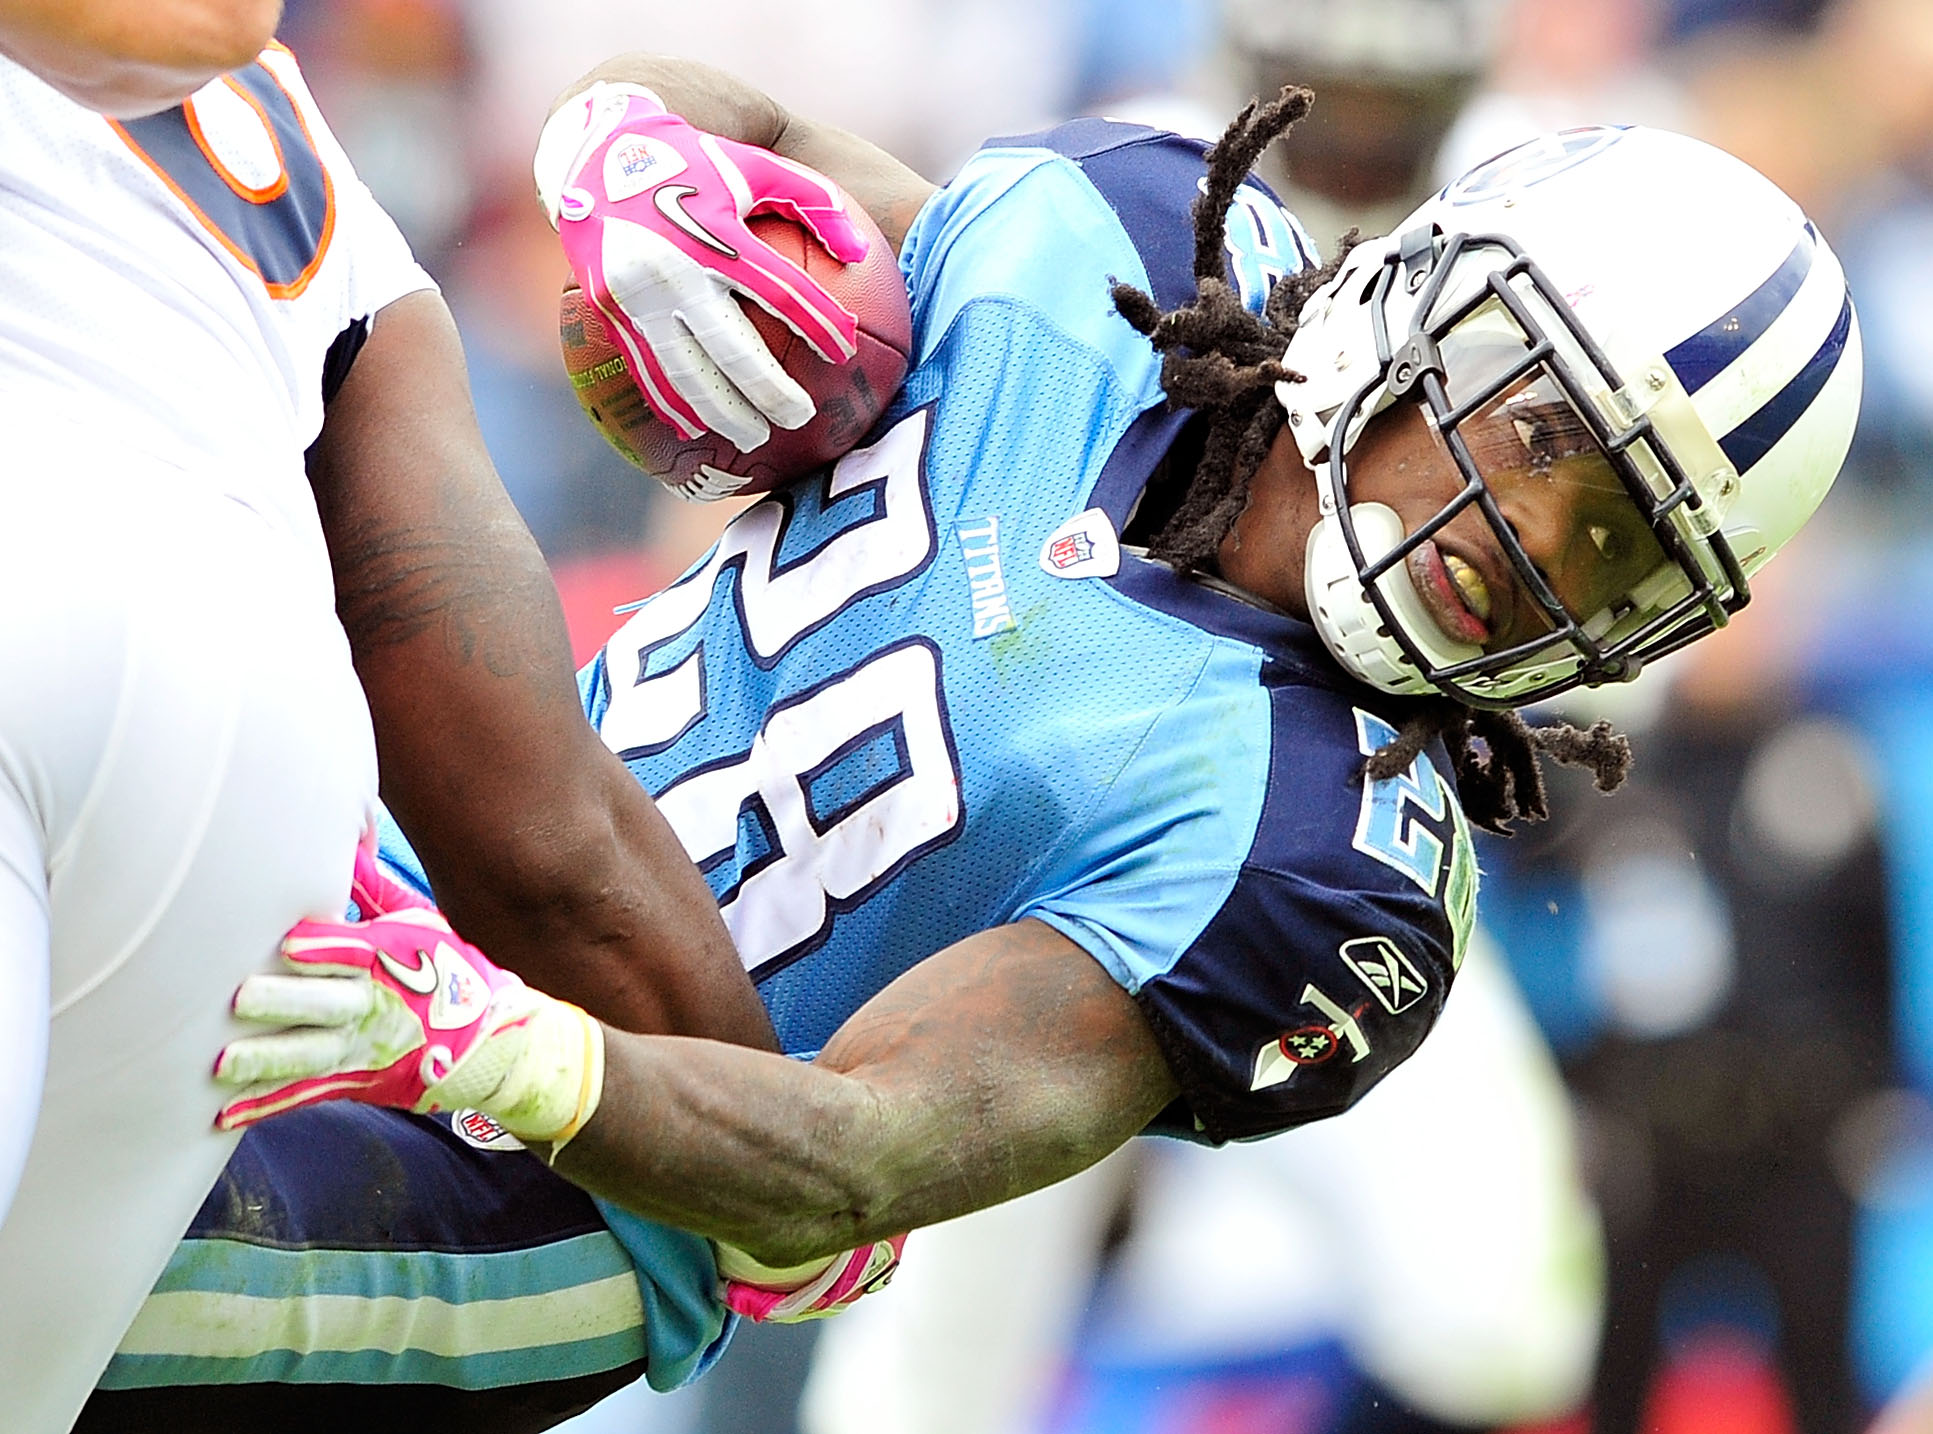 NASHVILLE, TN - OCTOBER 03:  Chris Johnson #28 of the Tennessee Titans stretches for extra yards against the Denver Broncos at LP Field on October 3, 2010 in Nashville, Tennessee. Denver won 26-20.  (Photo by Grant Halverson/Getty Images)